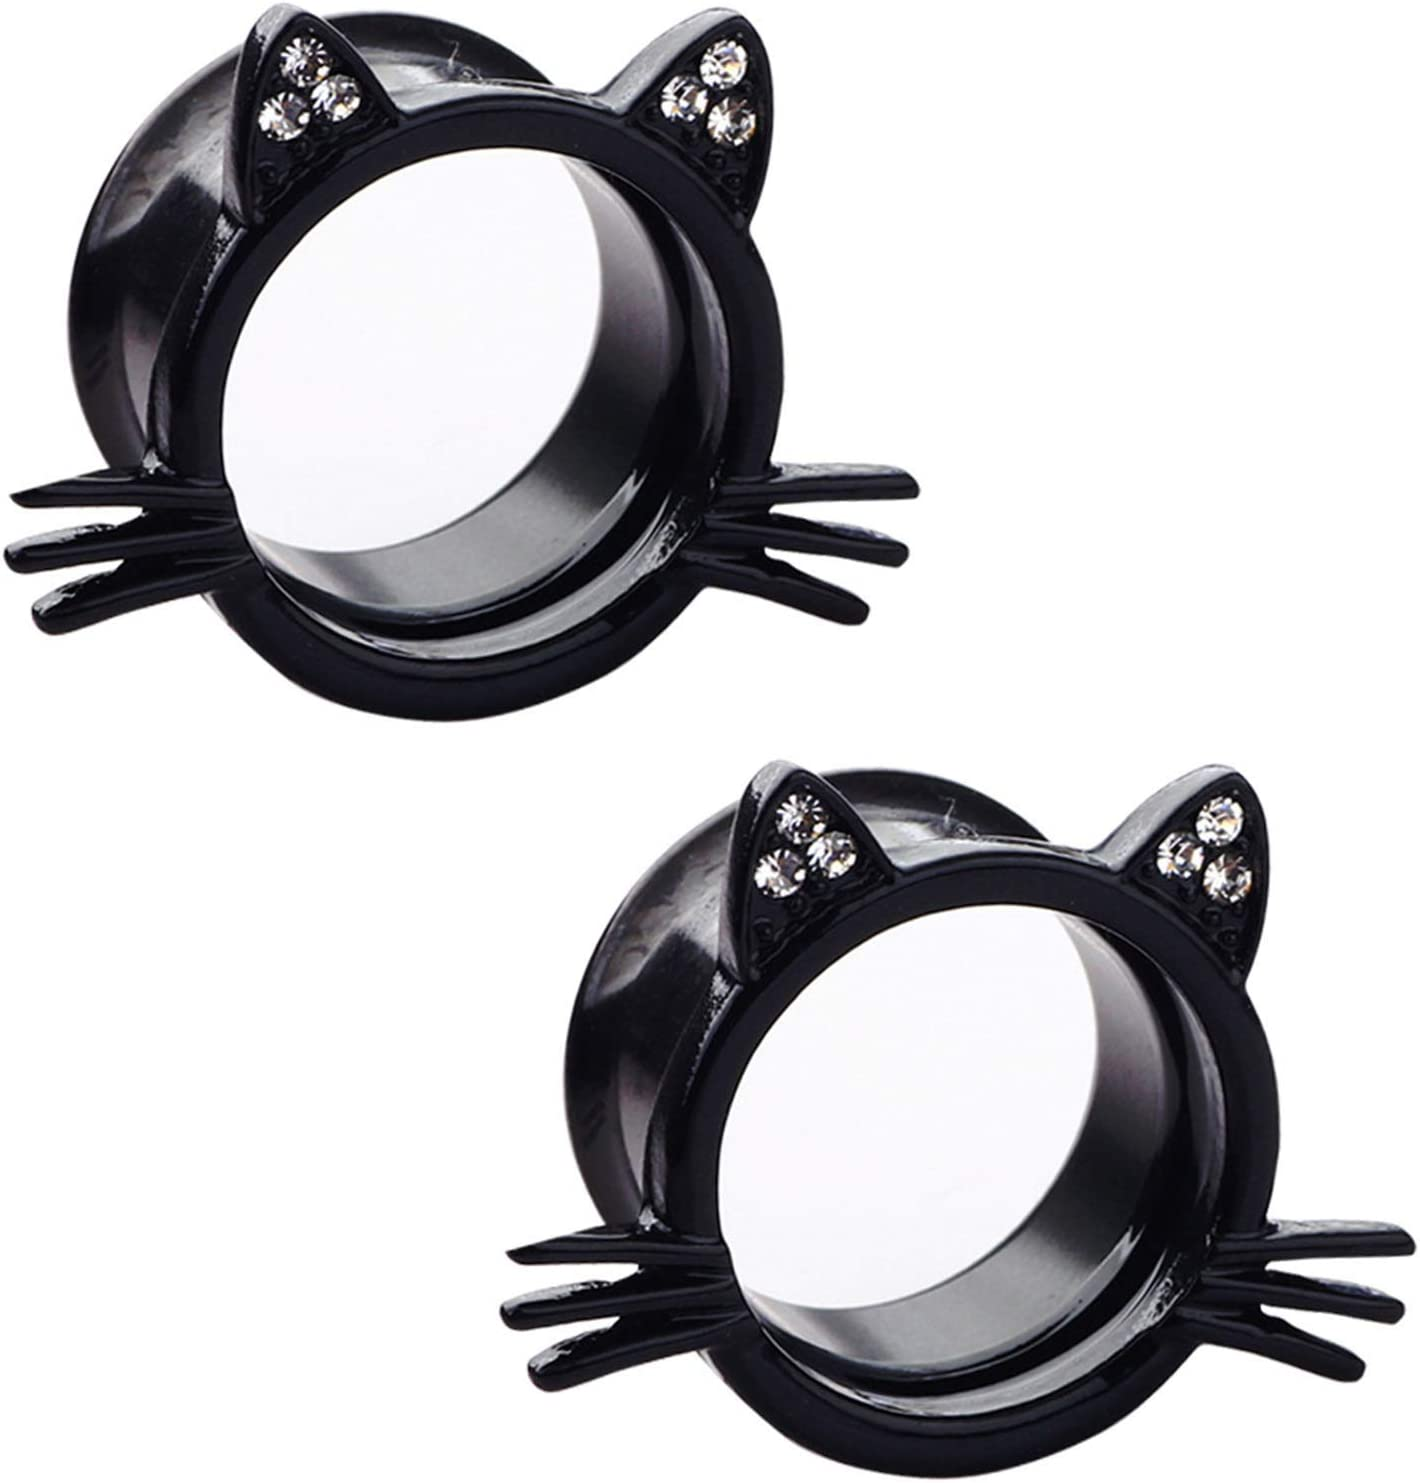 ALONG-J 1 Pair Screw Ear Tunnels We OFFer at cheap prices Cat Stainless Plugs Steel Outstanding Cute